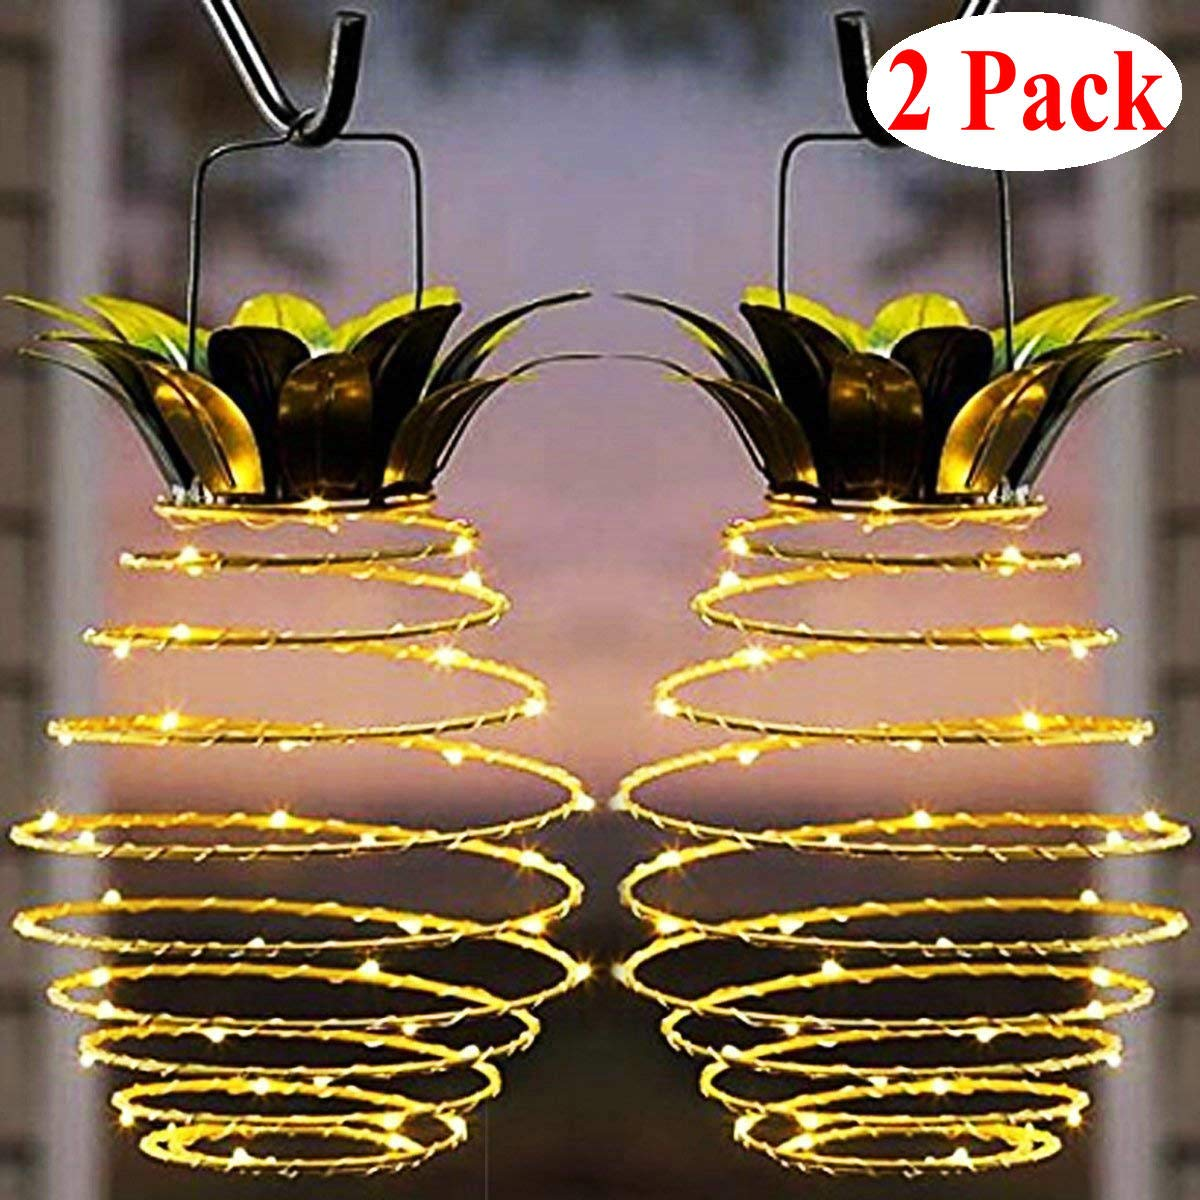 Garden solar lights outdoor decor pineapple solar path lights hanging fairy lights 2 pack waterproof 25 solar led warm fairy string for patio path